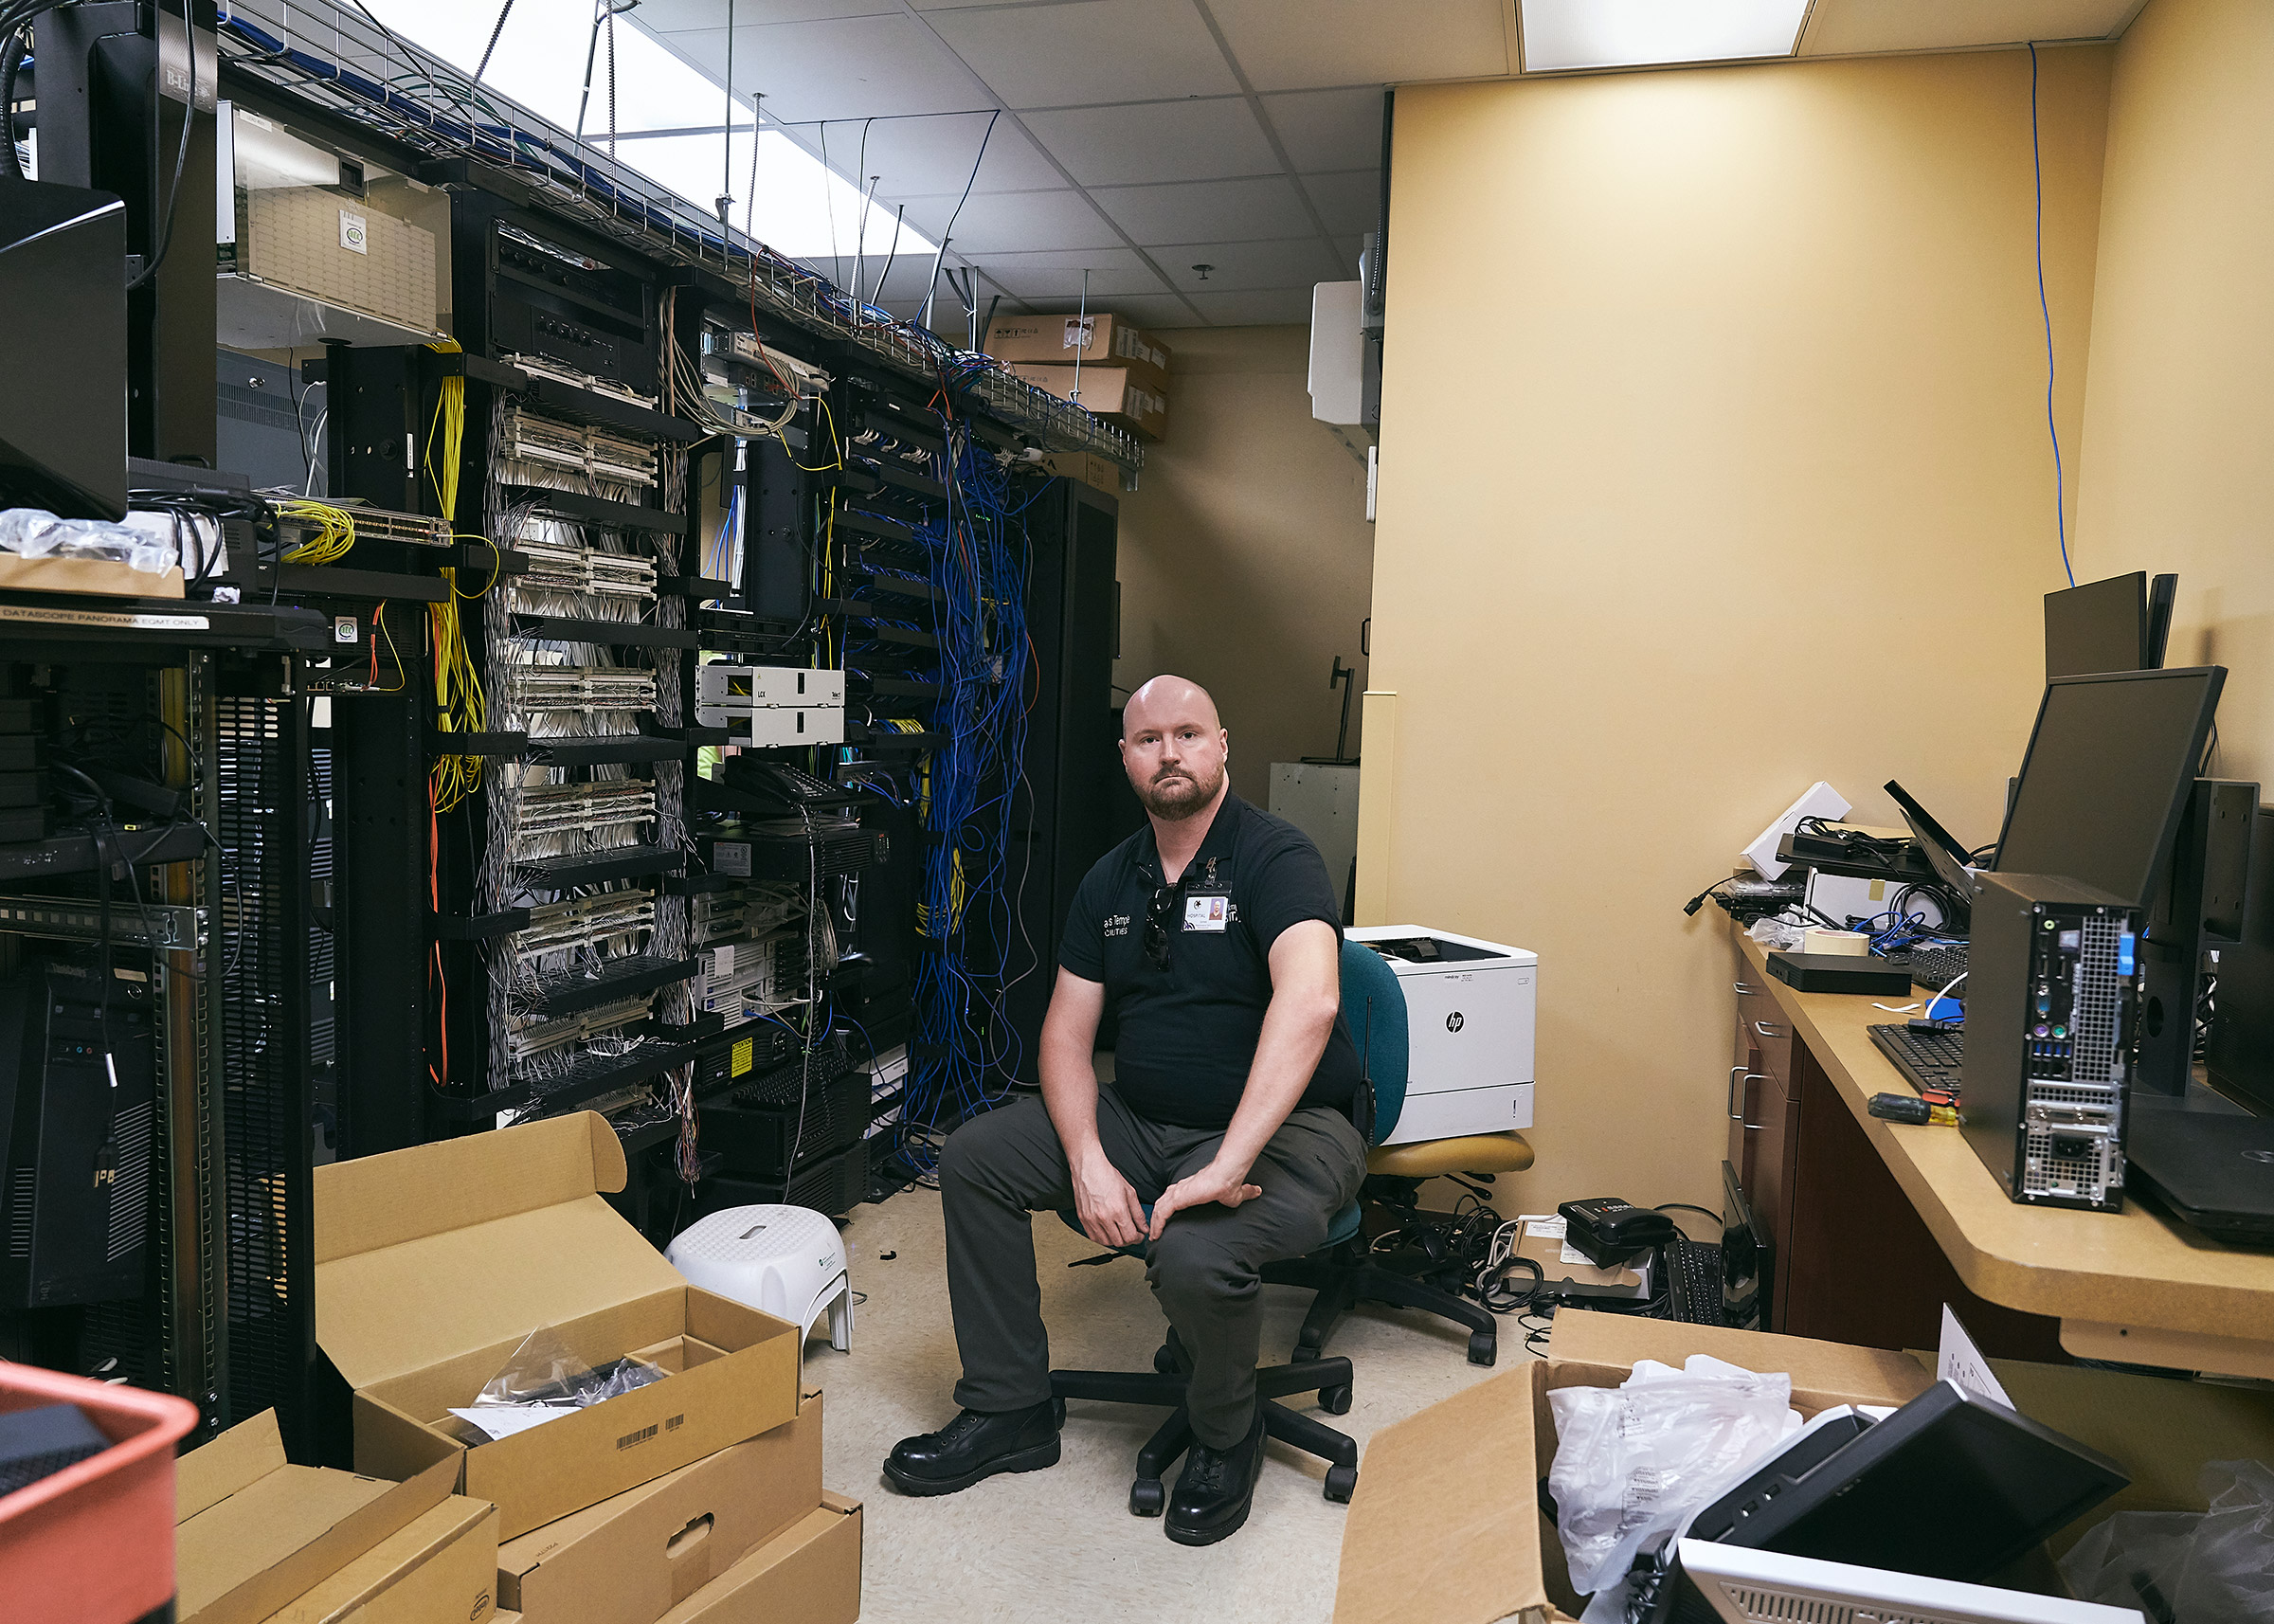 Facilities assistant James Temple in the newly upgraded computer systems center at Clinch Memorial Hospital.